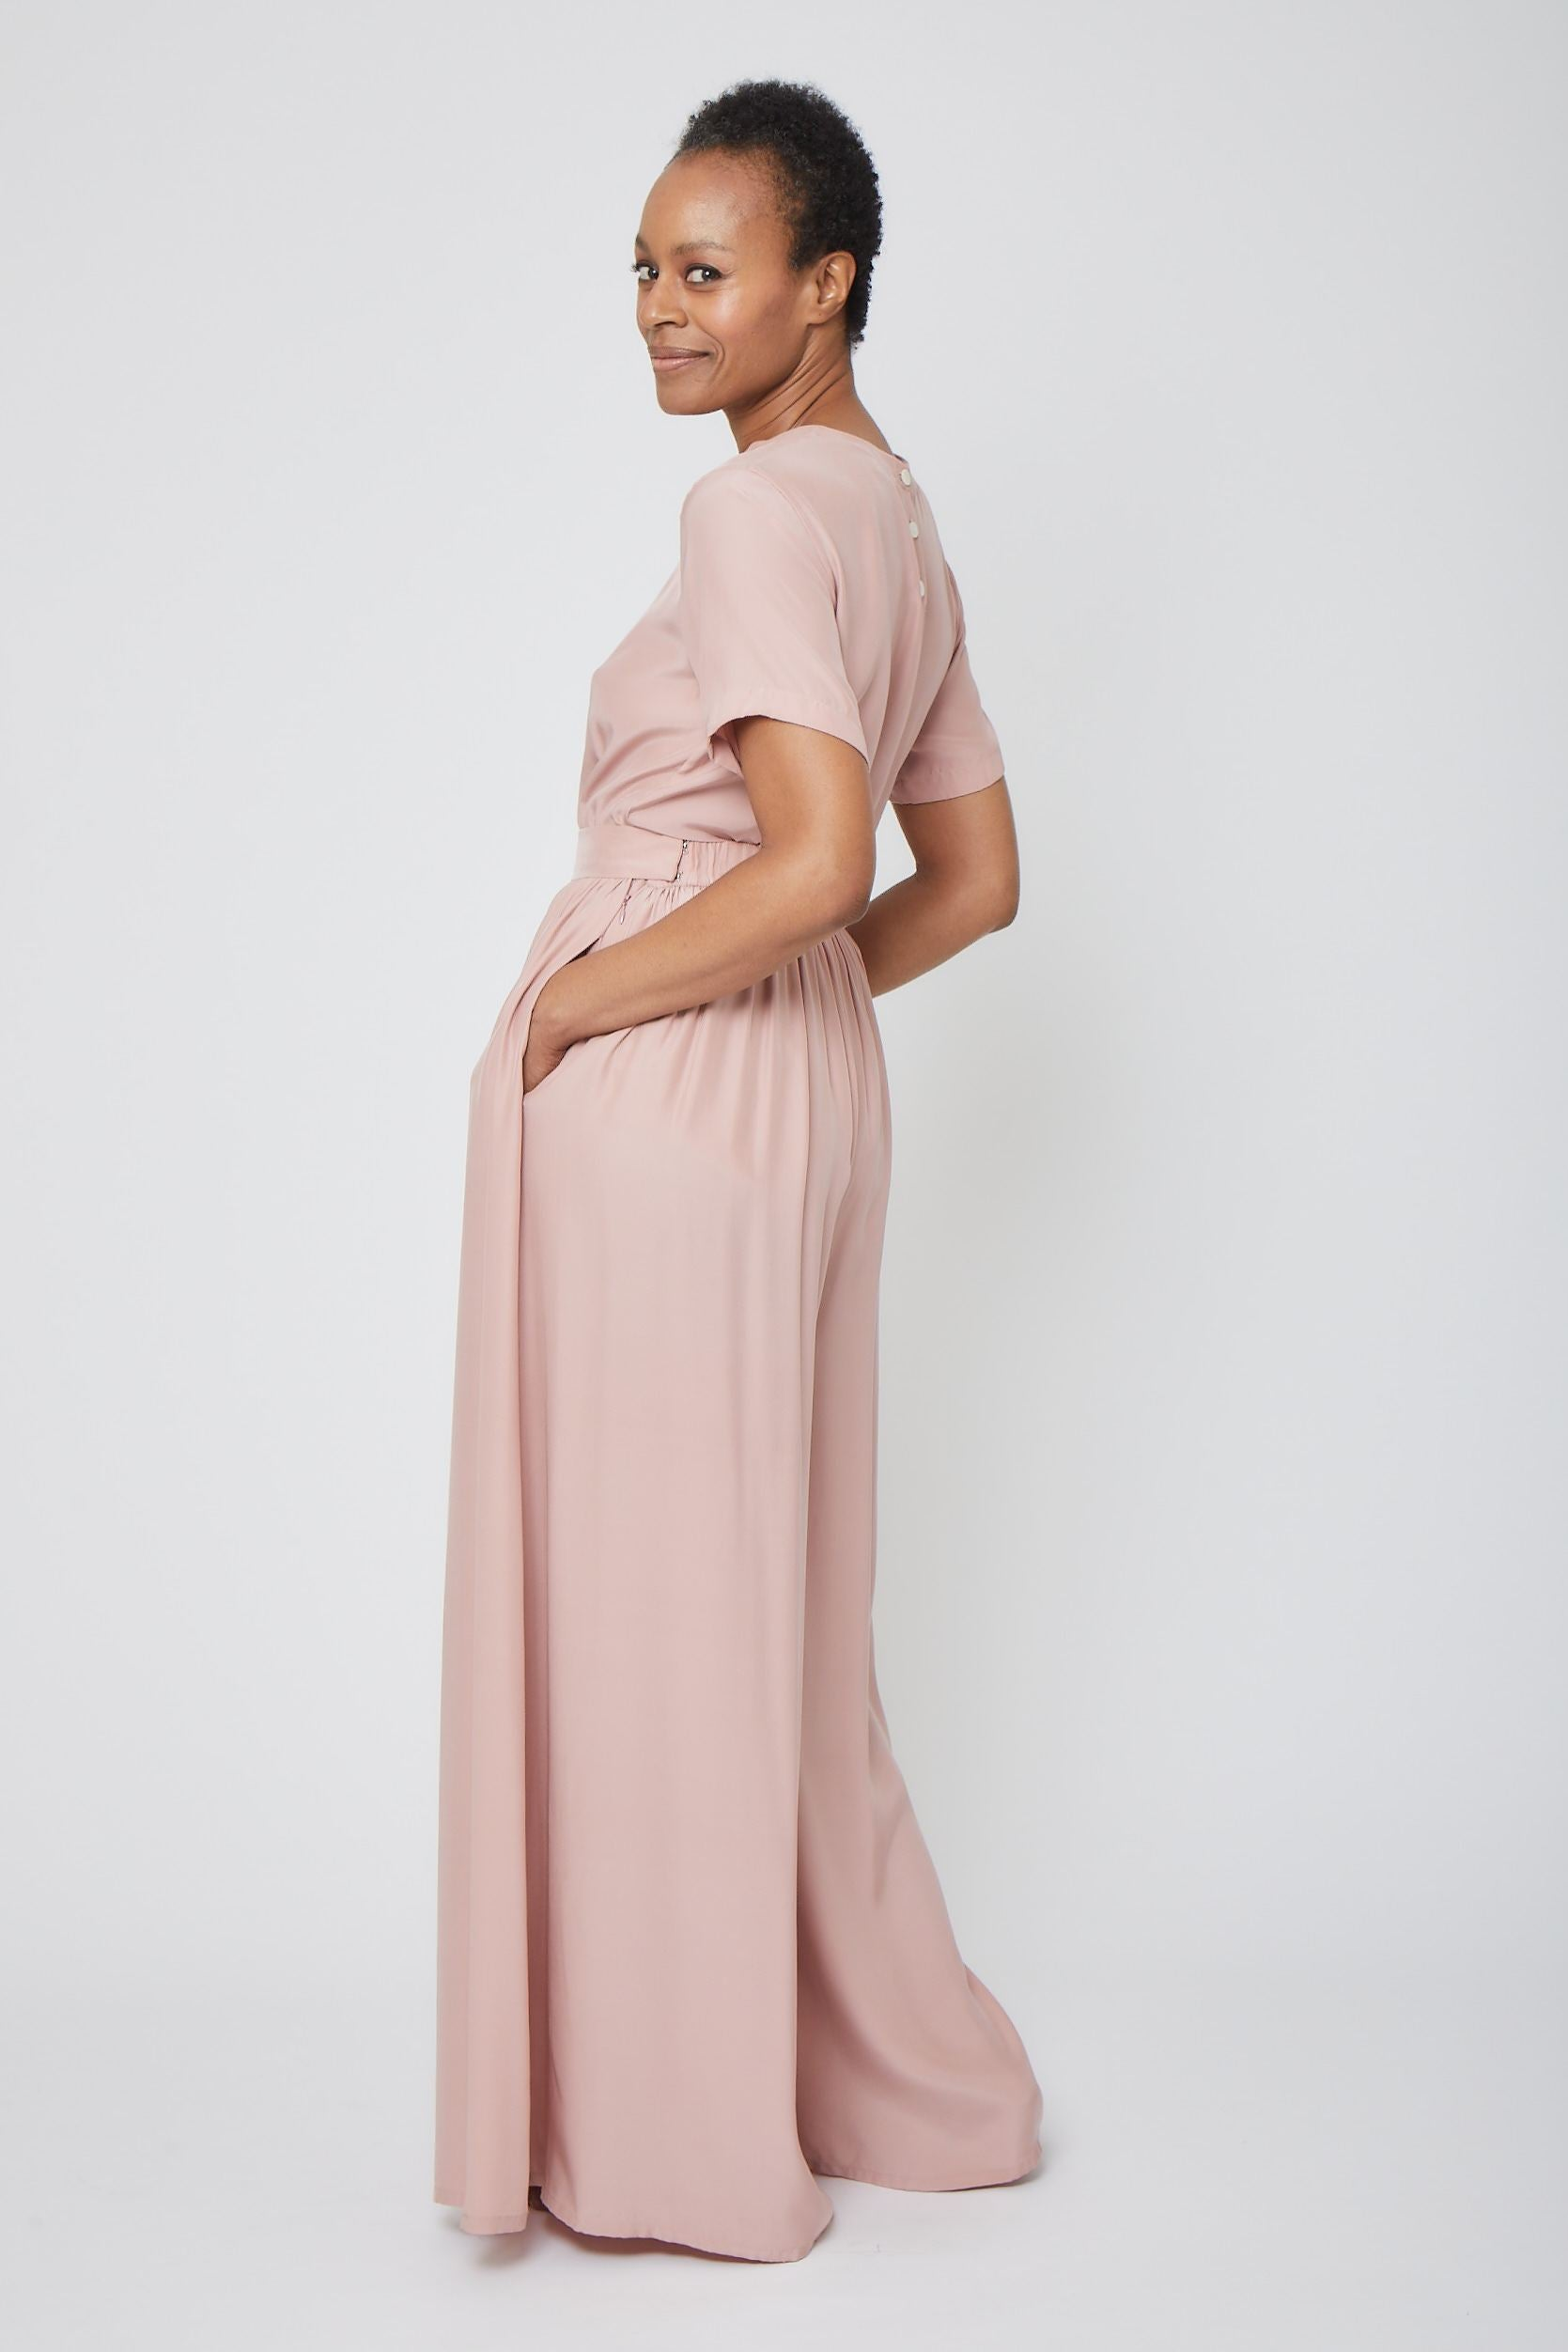 PLF_022620_13_WIDE_LEG_PANT_TOP_BLUSH_0281